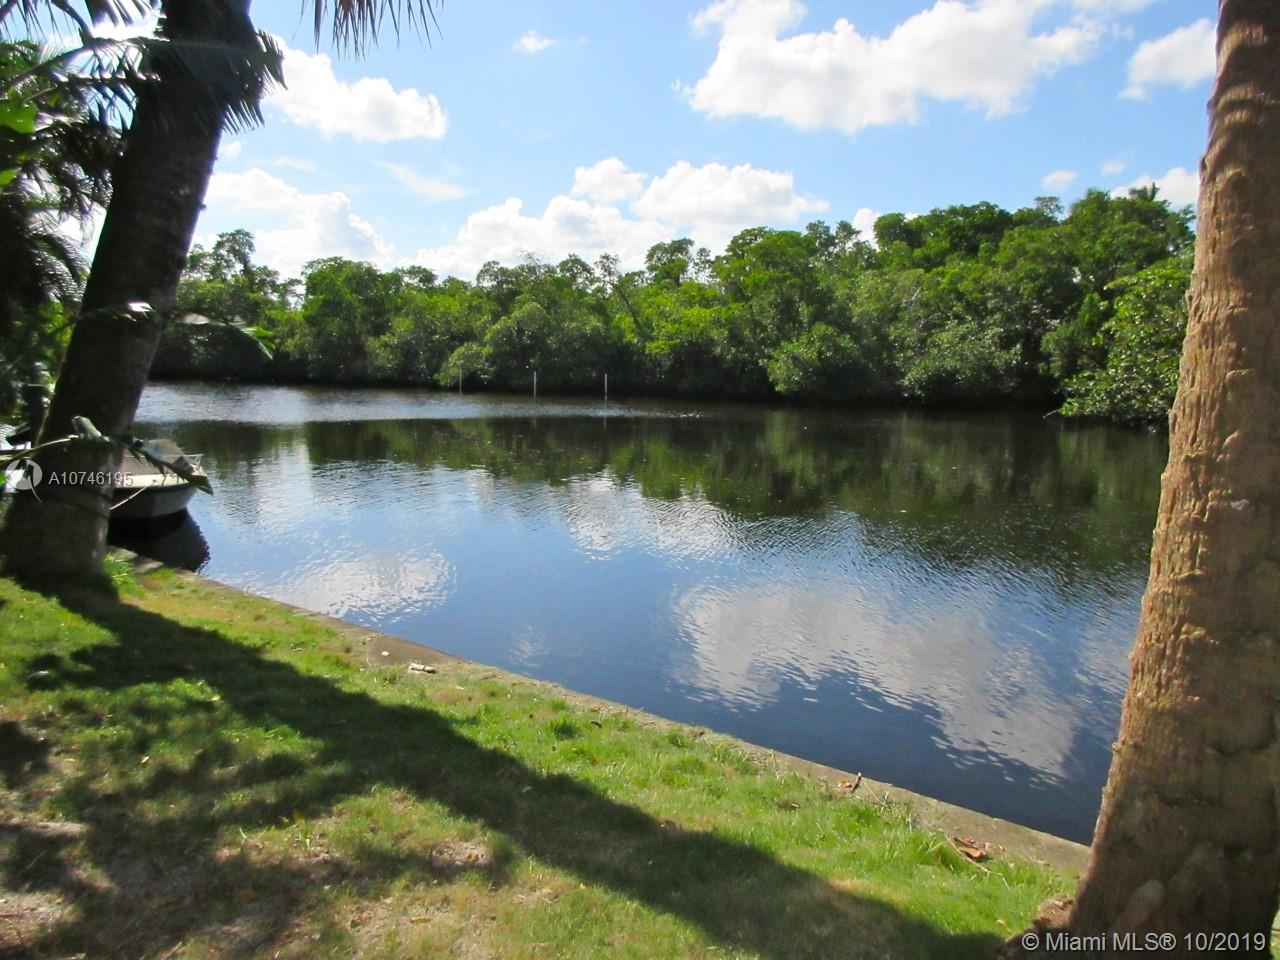 Spectacular Waterfront Location! Endless Possibilities! This South Fork of the Middle River Estates property sports a huge lot! 12,014 sqft! Just over a quarter acre, with over 110 feet of water frontage. Zoned RML-25, one could build a multi-unit, luxury property for sales or rentals. A 200 foot height restriction, means townhomes, or higher, are in order. Bordering Wilton Manors & Ft. Lauderdale, this location puts you in the sweet spot, as it is close to absolutely everything! The existing 3/2 single family home, is showing its age. Needs a new roof, attention to  plumbing, & a complete renovation. The wood deck needs replacement & the seawall needs repair. INVESTOR/DEVELOPER: Build a high profit waterfront multi unit dream! PRIMARY: Build a high value waterfront dream!HURRY!